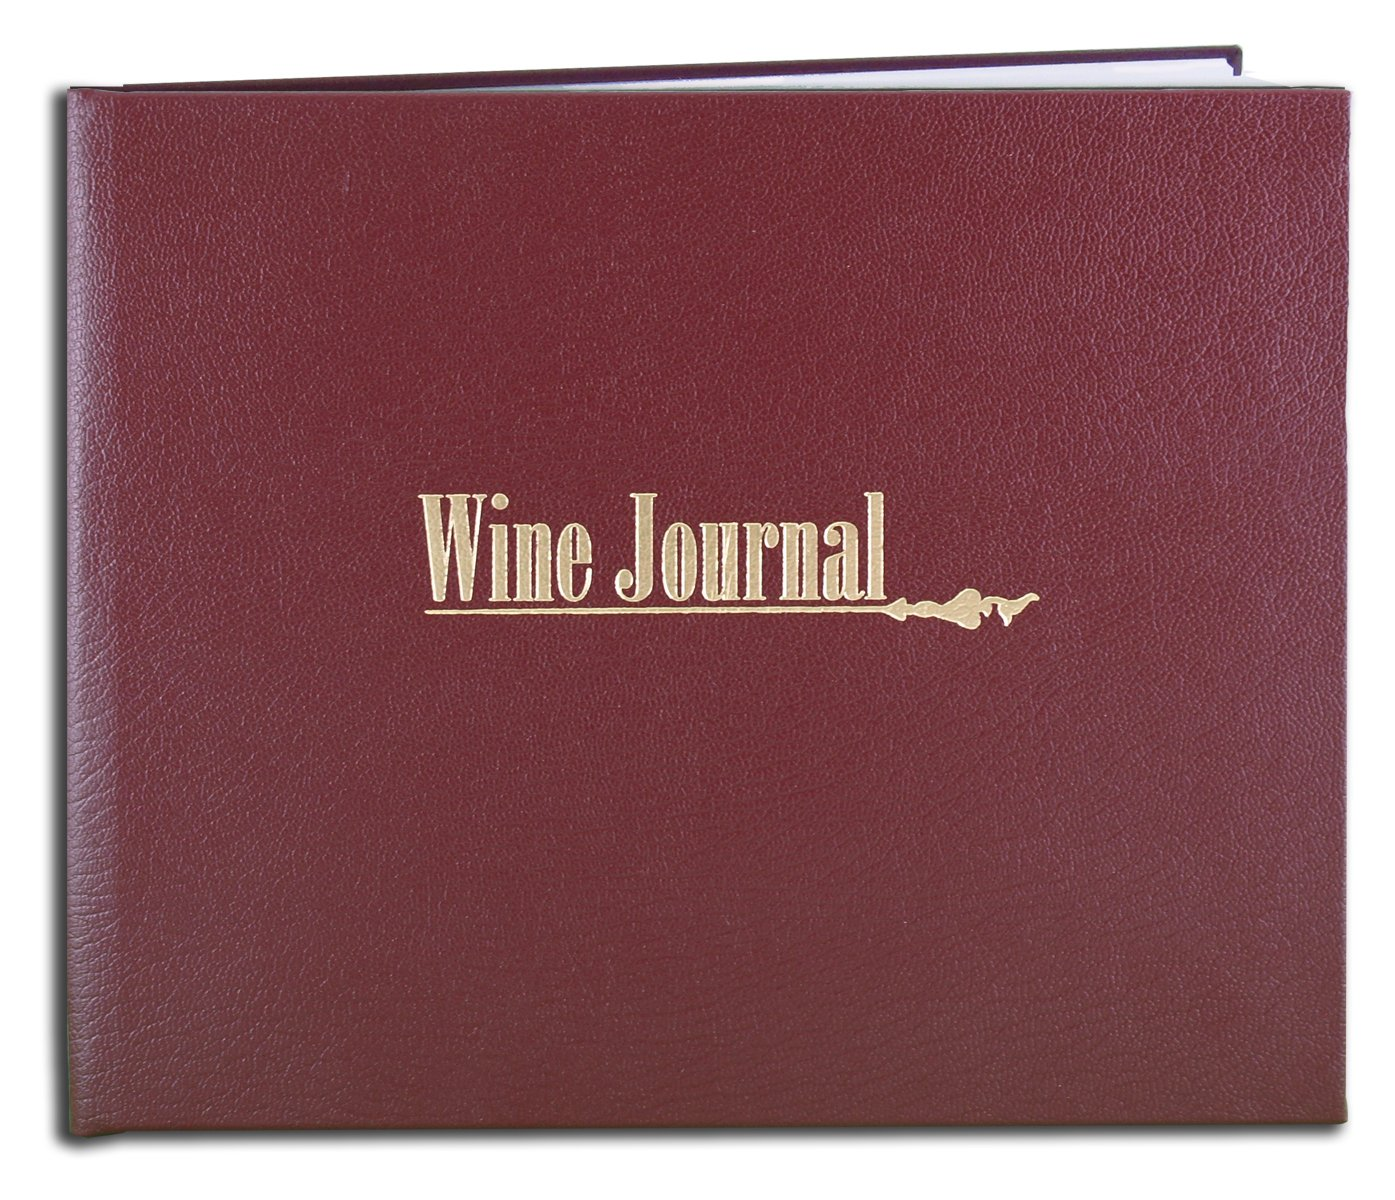 """BookFactory® Wine Journal / Wine Log Book / Wine Diary / Wine Notebook - Burgundy Leather Cover - 72 Pages, Professional Grade - Hardbound, 8 7/8"""" x 7"""" (LOG-072-XLO-TWR-WINE-XMT43)"""